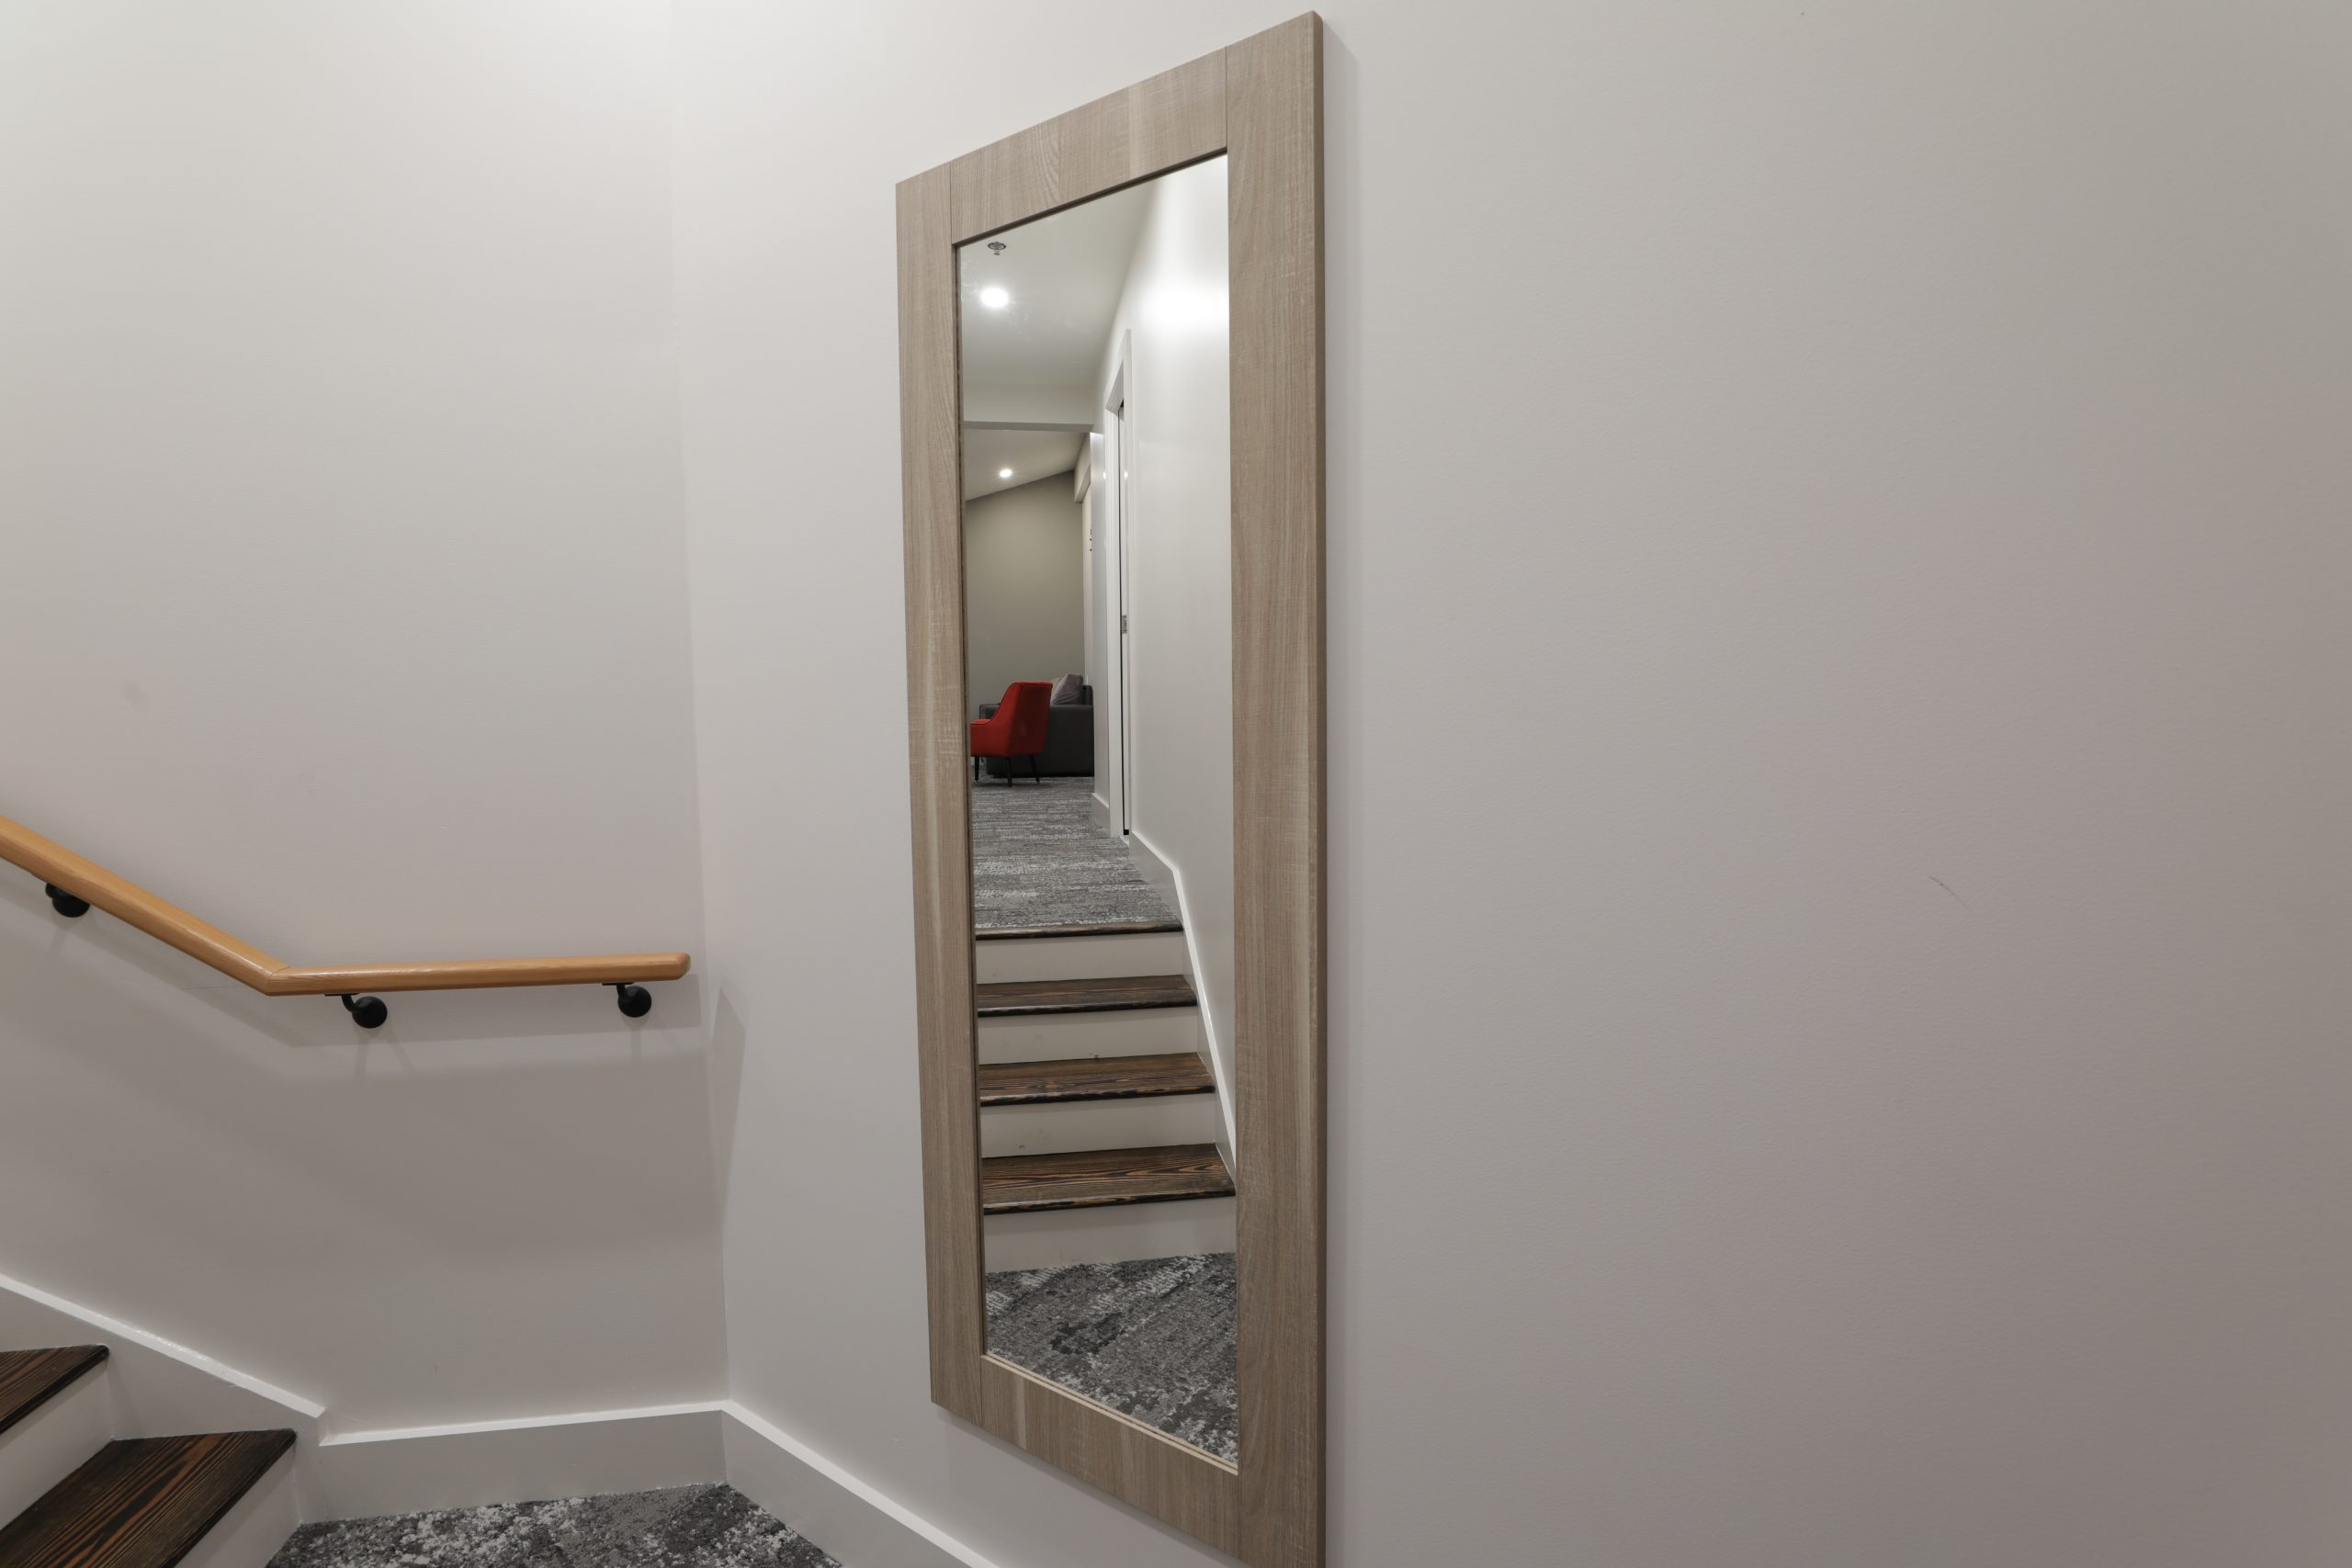 entry to room with mirror